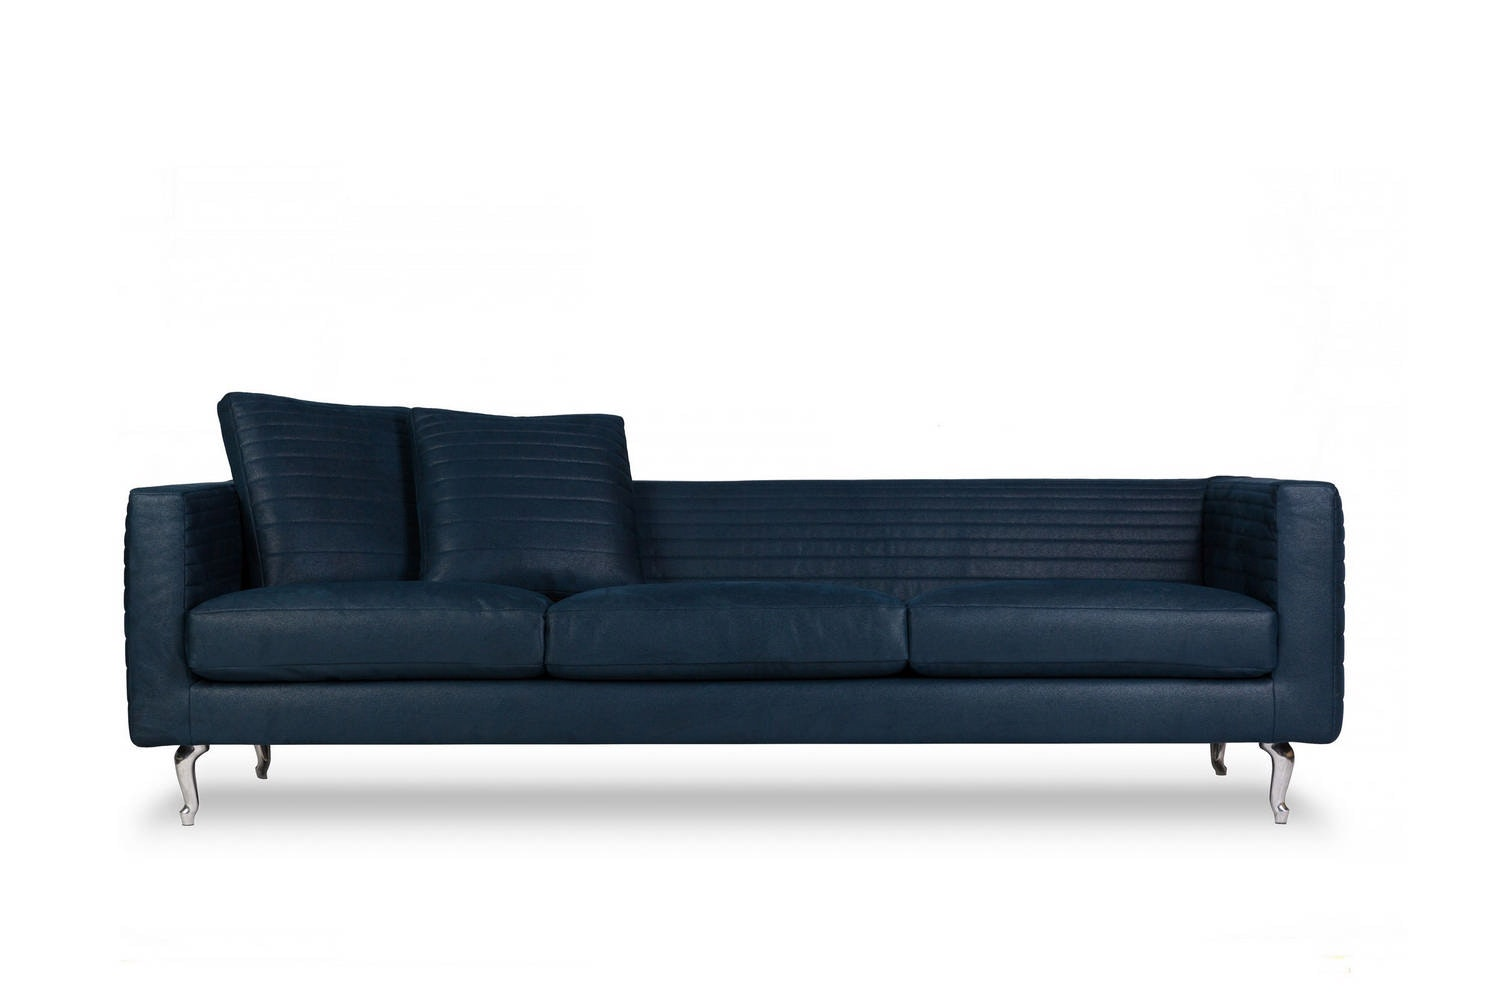 Boutique Horizons Sofa by Marcel Wanders for Moooi